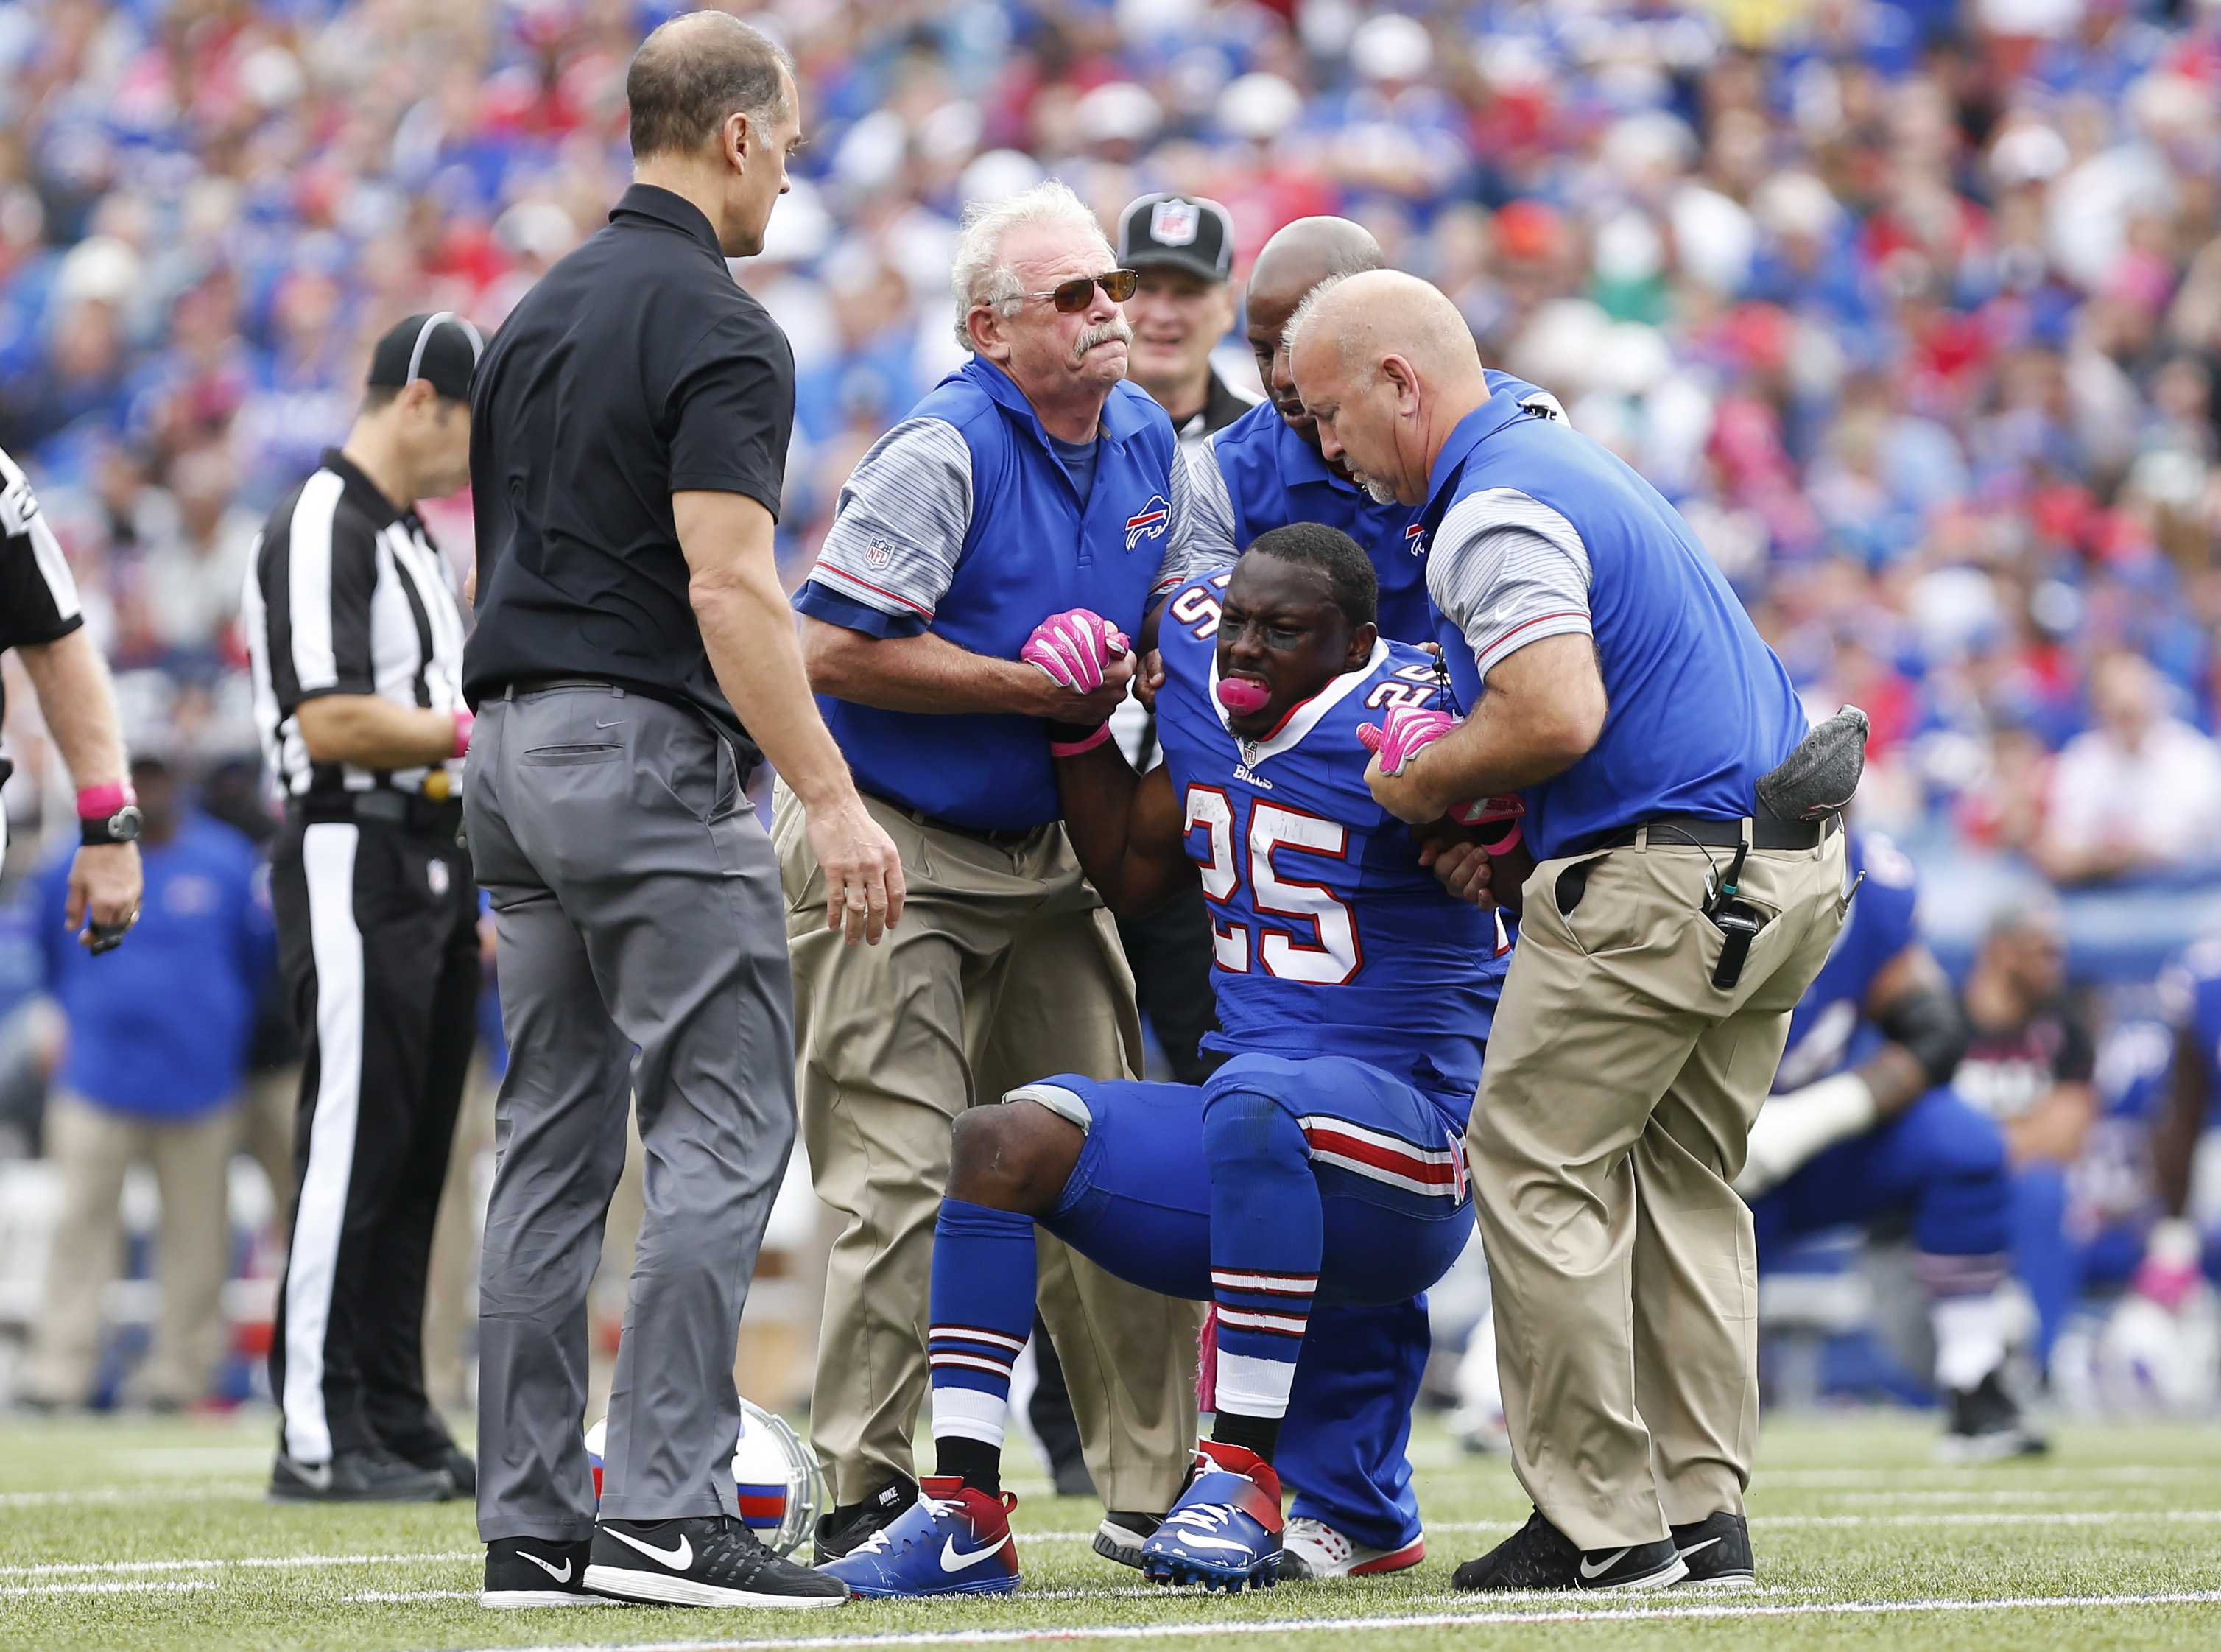 Oct 16, 2016; Orchard Park, NY, USA; Buffalo Bills running back LeSean McCoy (25) is helped to his feet after being injured during the first half against the San Francisco 49ers at New Era Field. Mandatory Credit: Kevin Hoffman-USA TODAY Sports